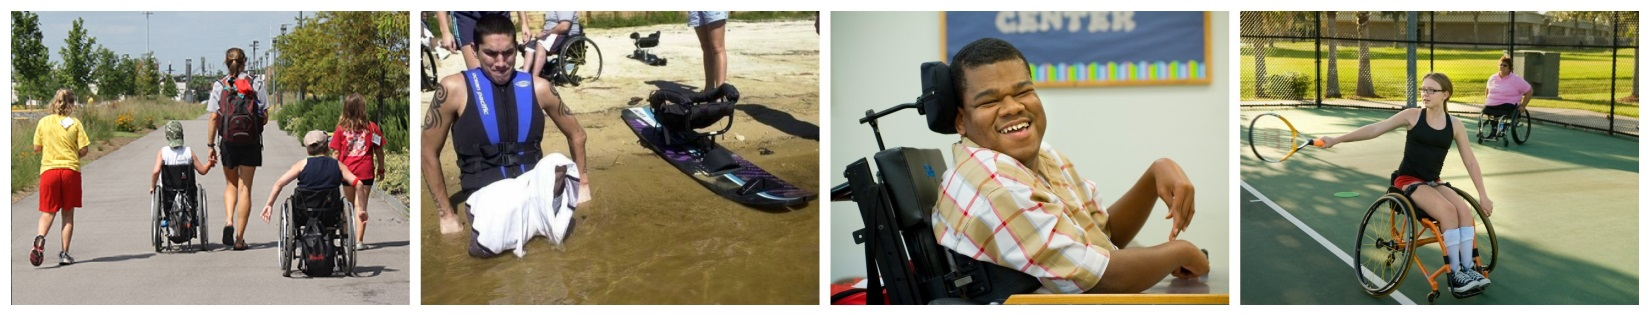 various images of people with disabilities being physically active at a park, on a tennis court, and in the water